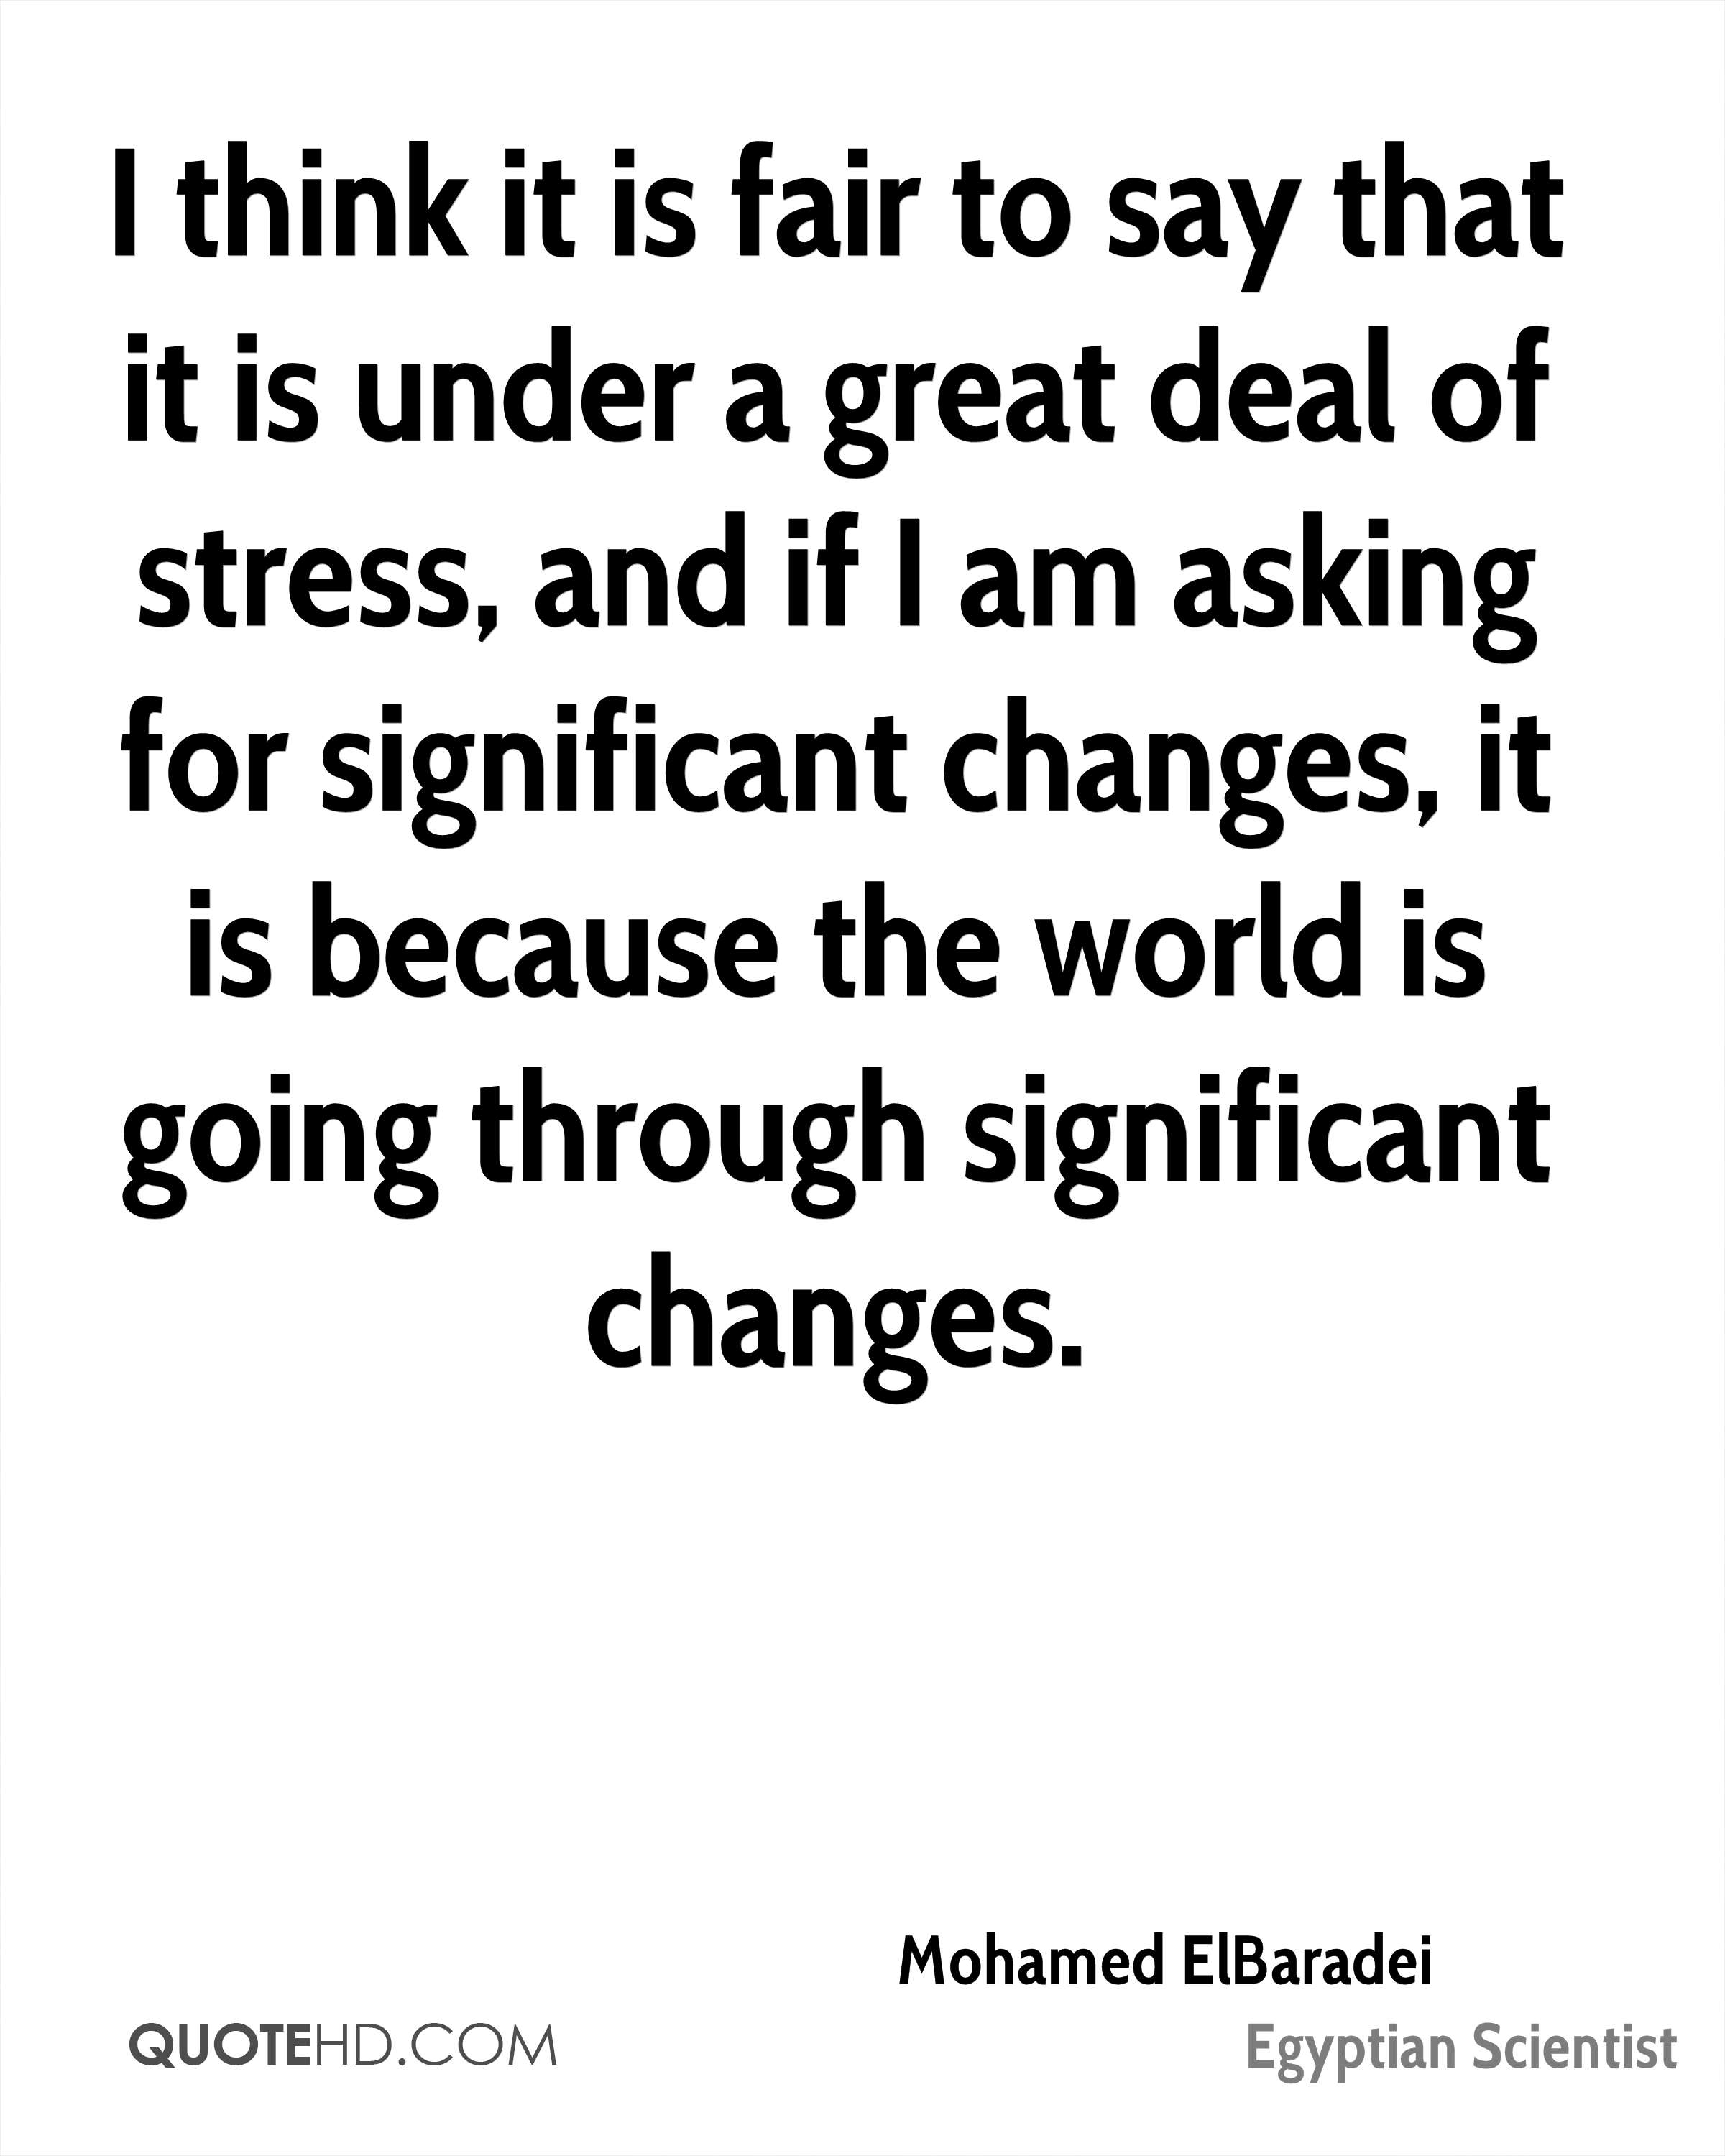 I think it is fair to say that it is under a great deal of stress, and if I am asking for significant changes, it is because the world is going through significant changes.